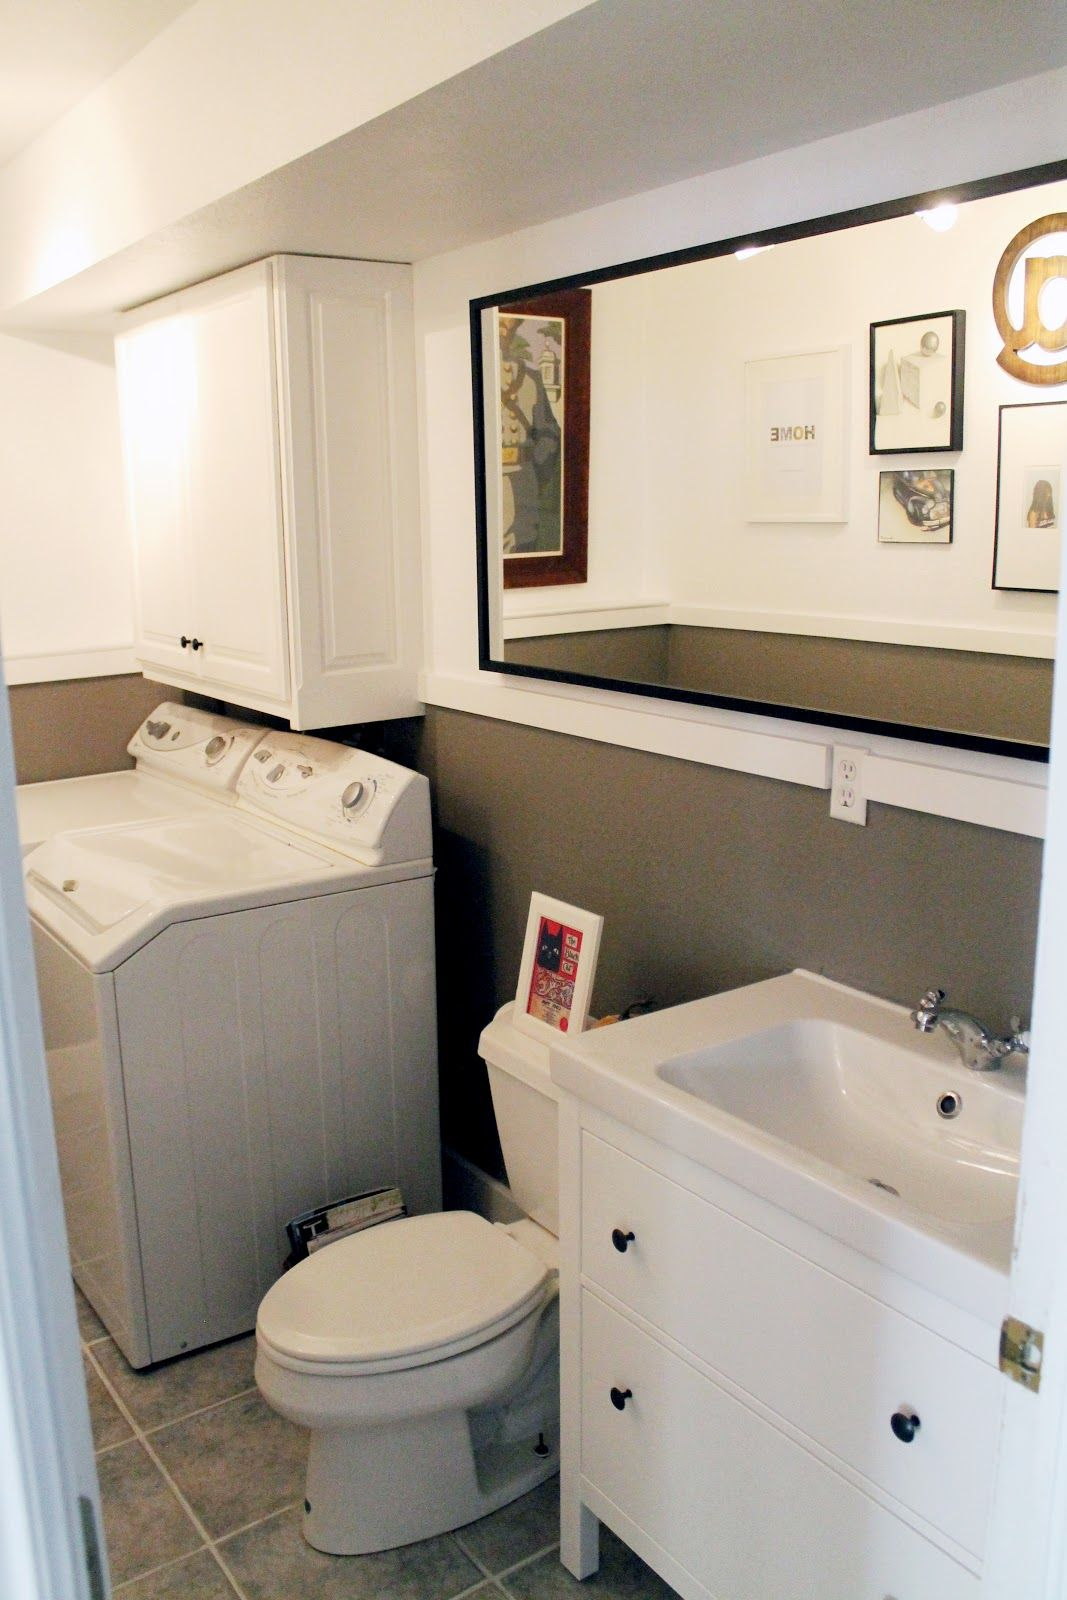 Basement Bathroom Laundry Room Combo. This Has All The Elements That We Need For Our Combo Im Still Not Sure If I Want A Front Load Or Top Load Though Front Load Would Be Nice To Have